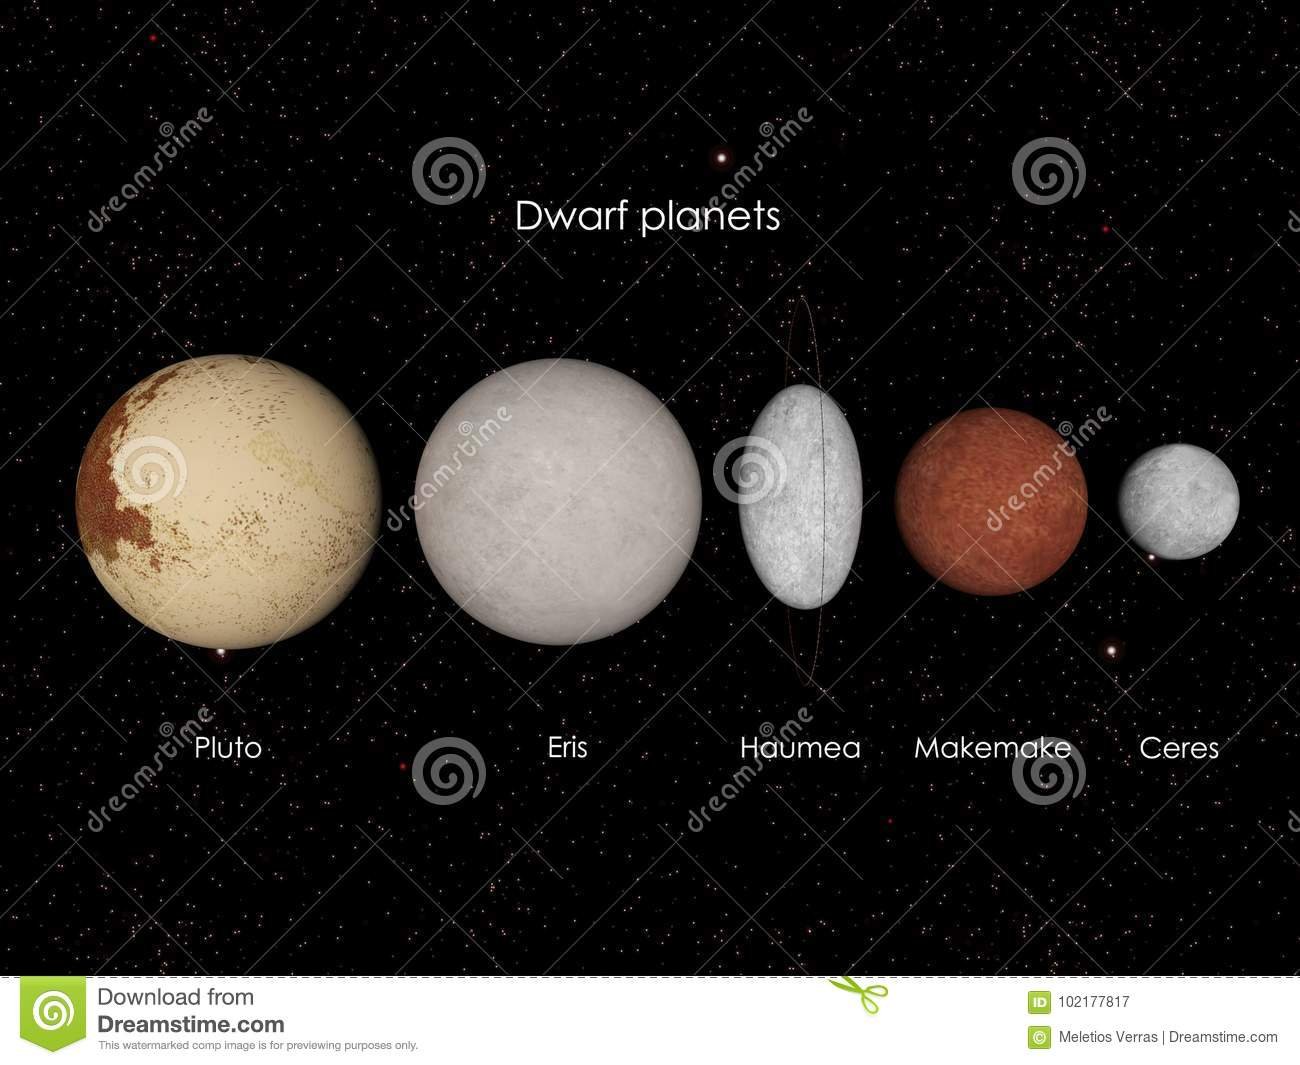 dwarf planets in our solar system - 800×600